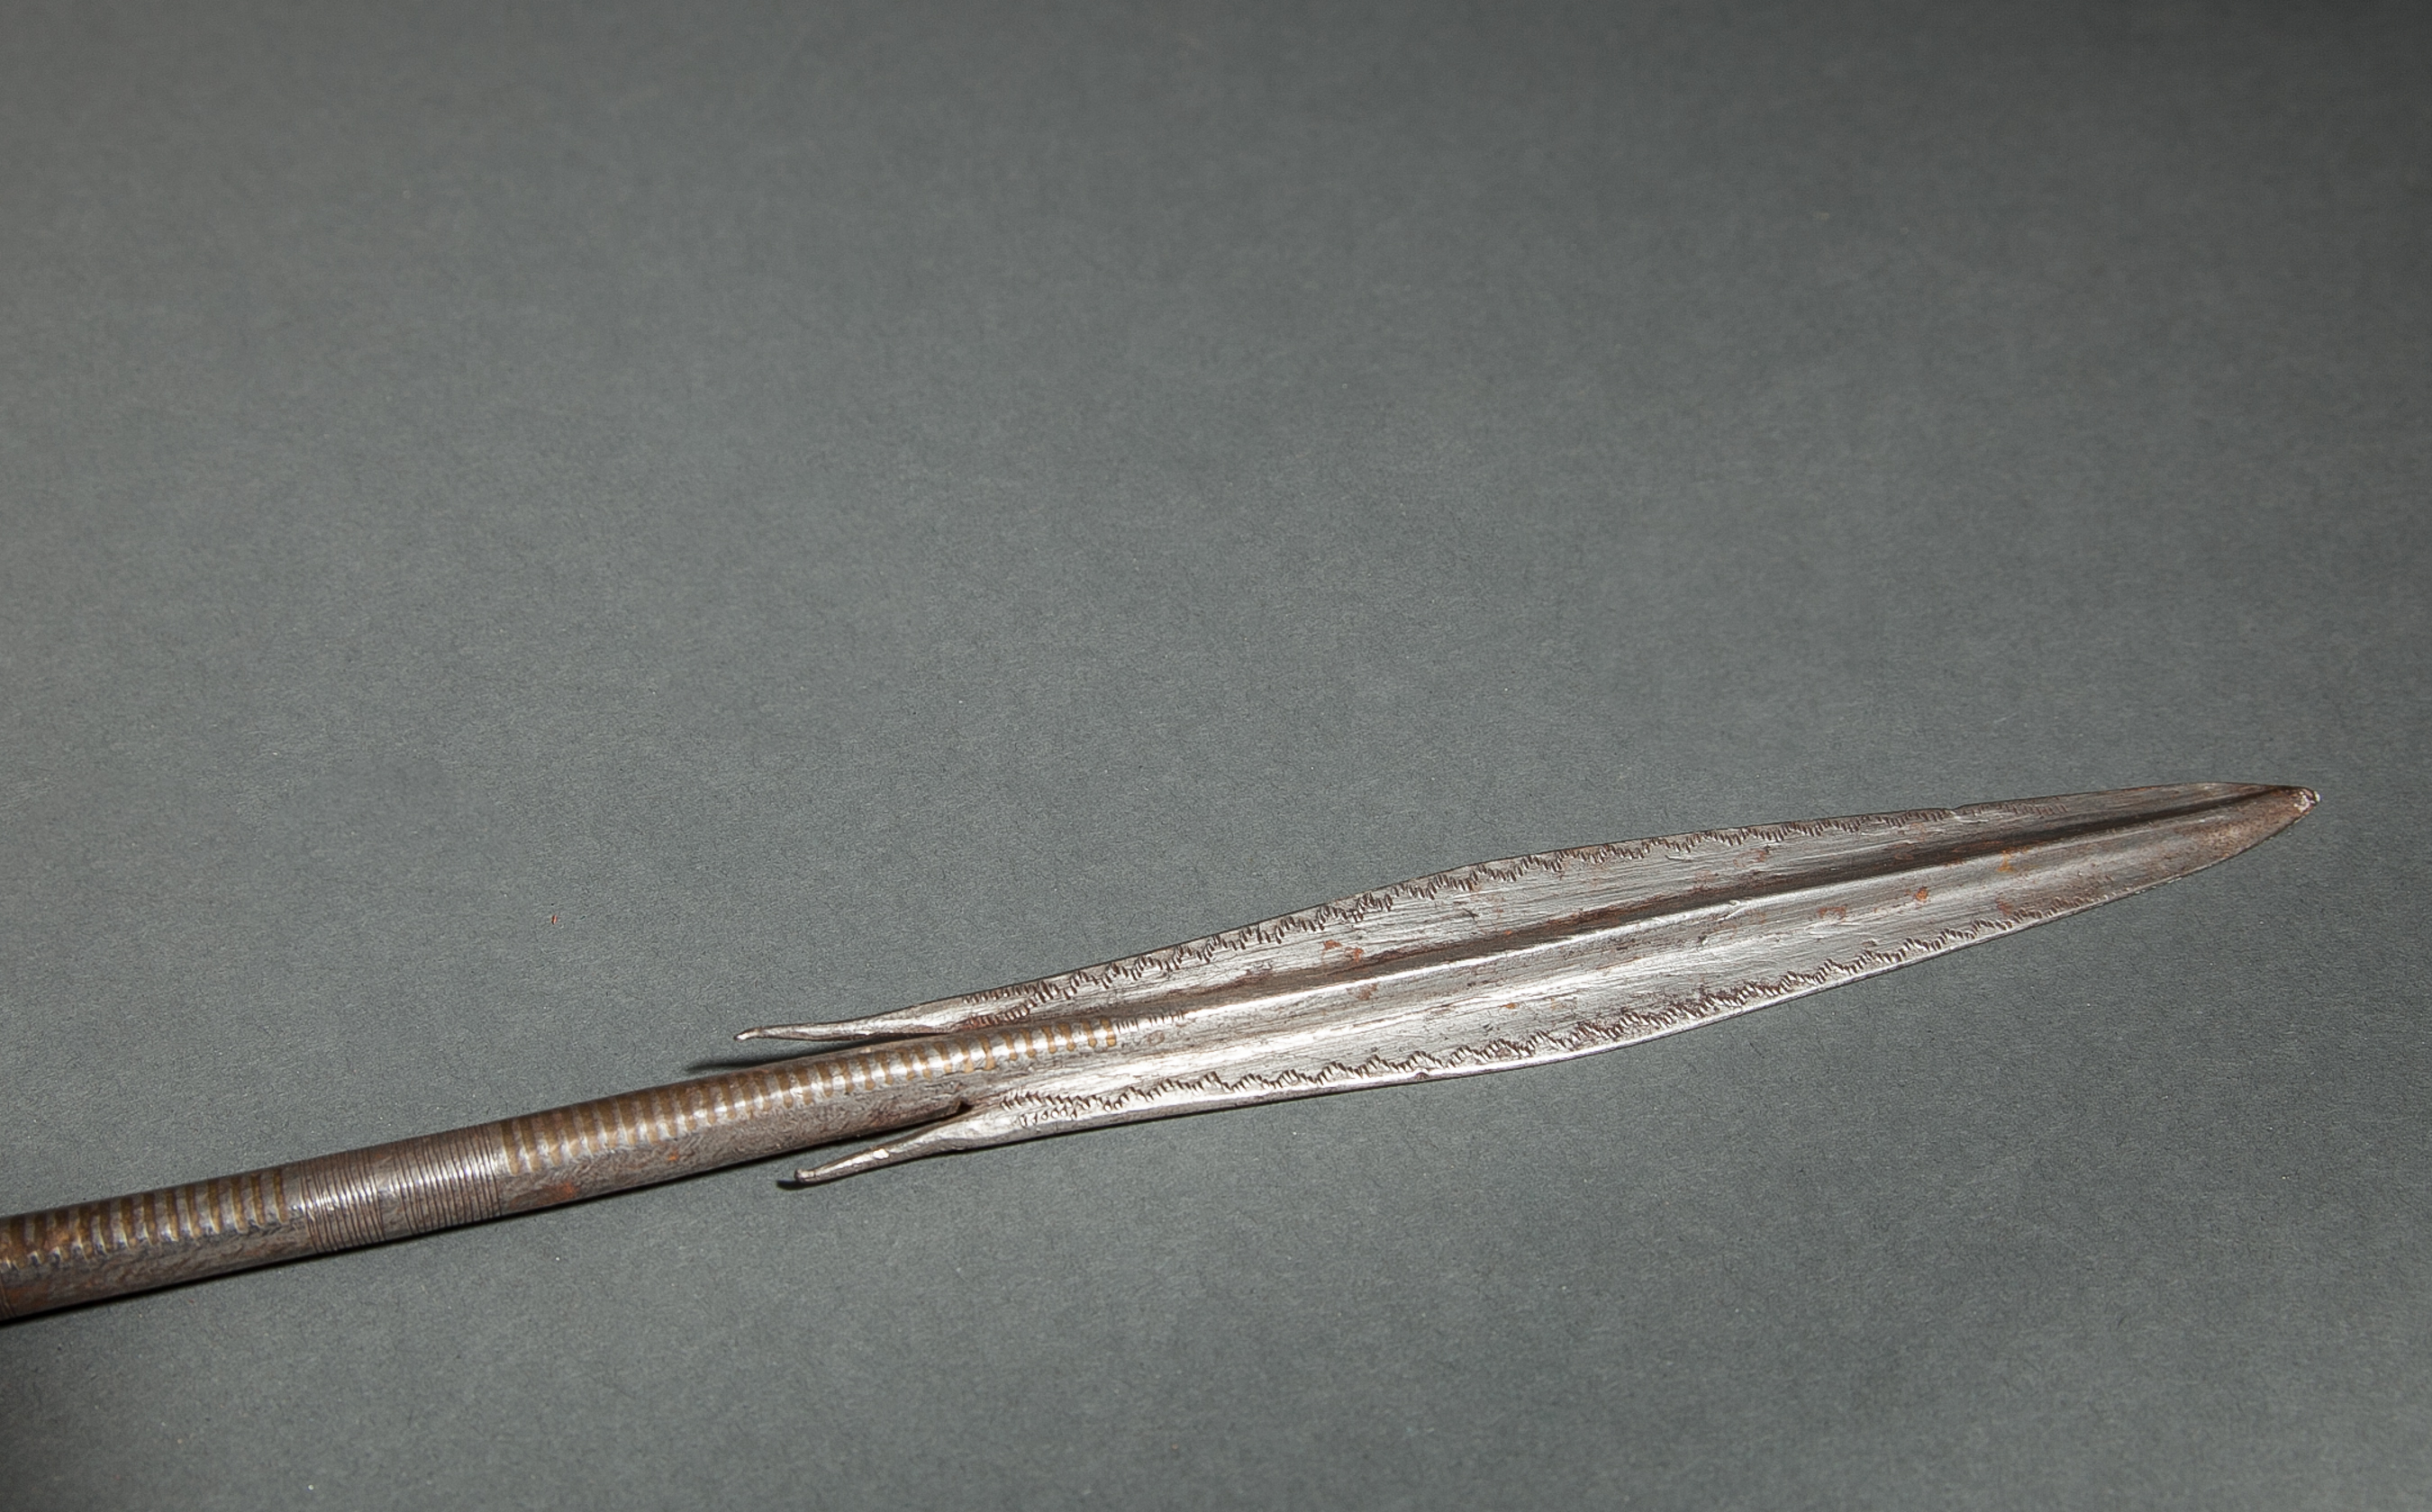 African Masai Spear with Leather Handle